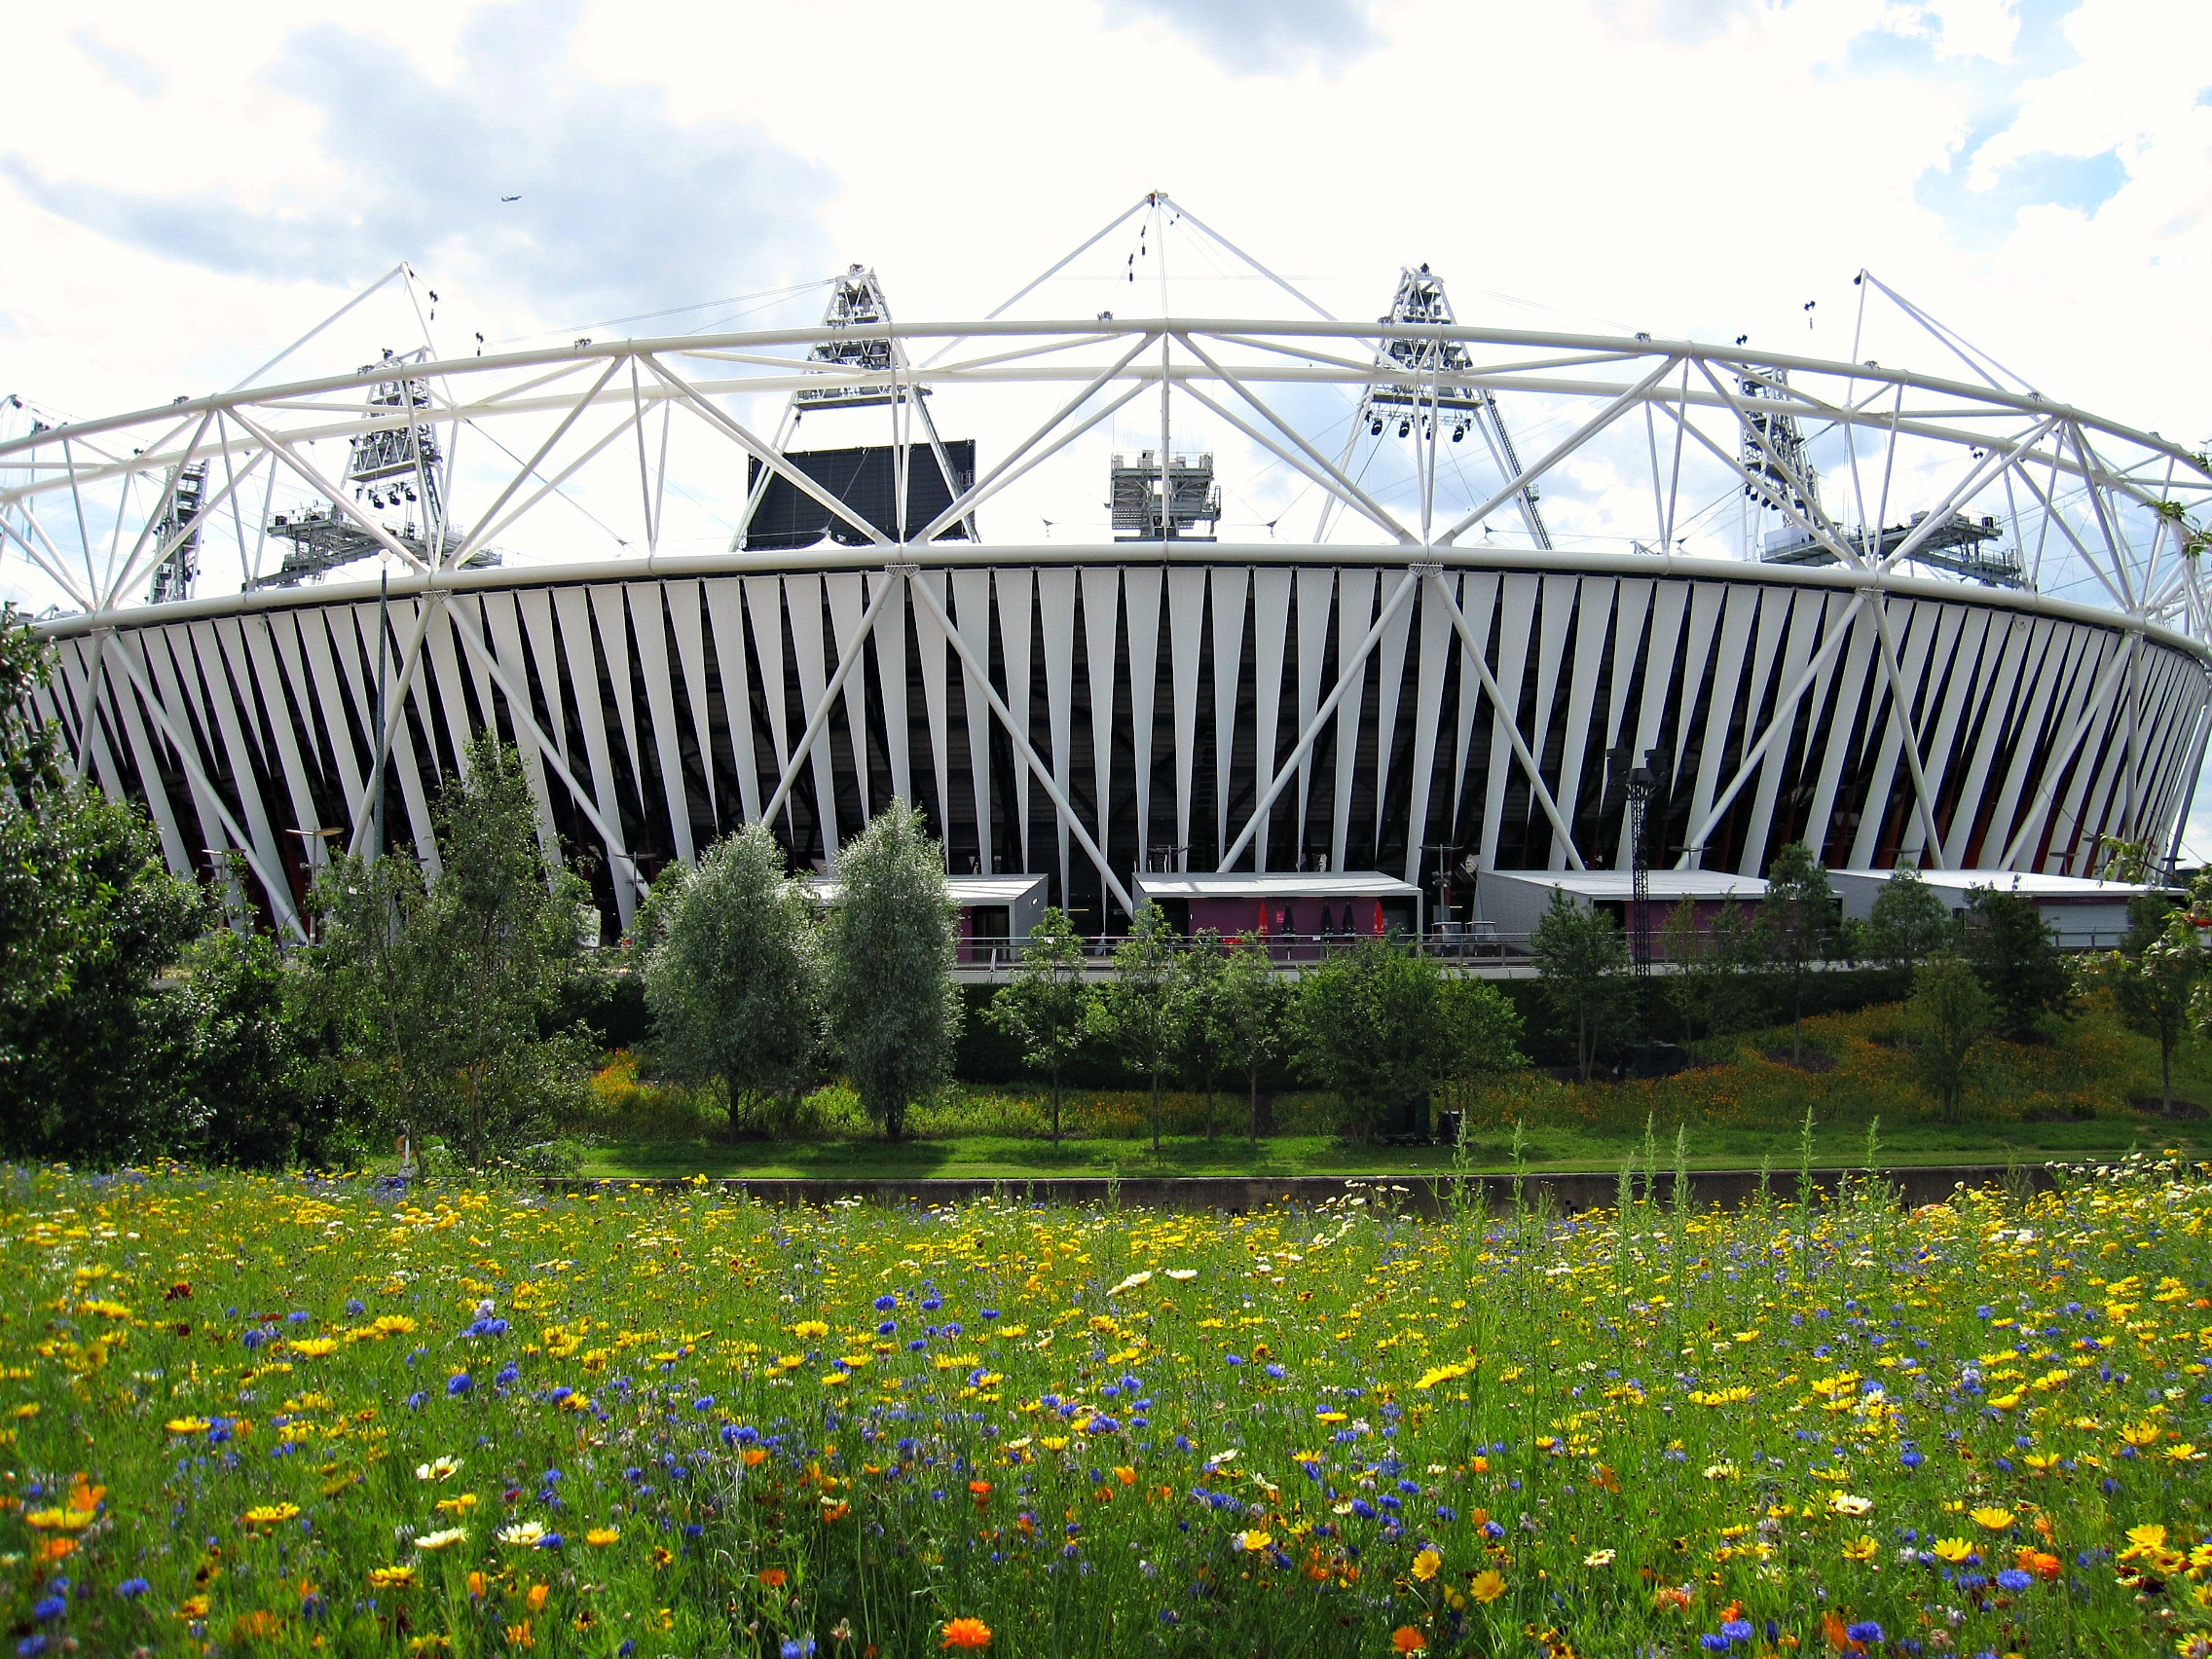 Insights With Interns: The London Olympics | helloworld com